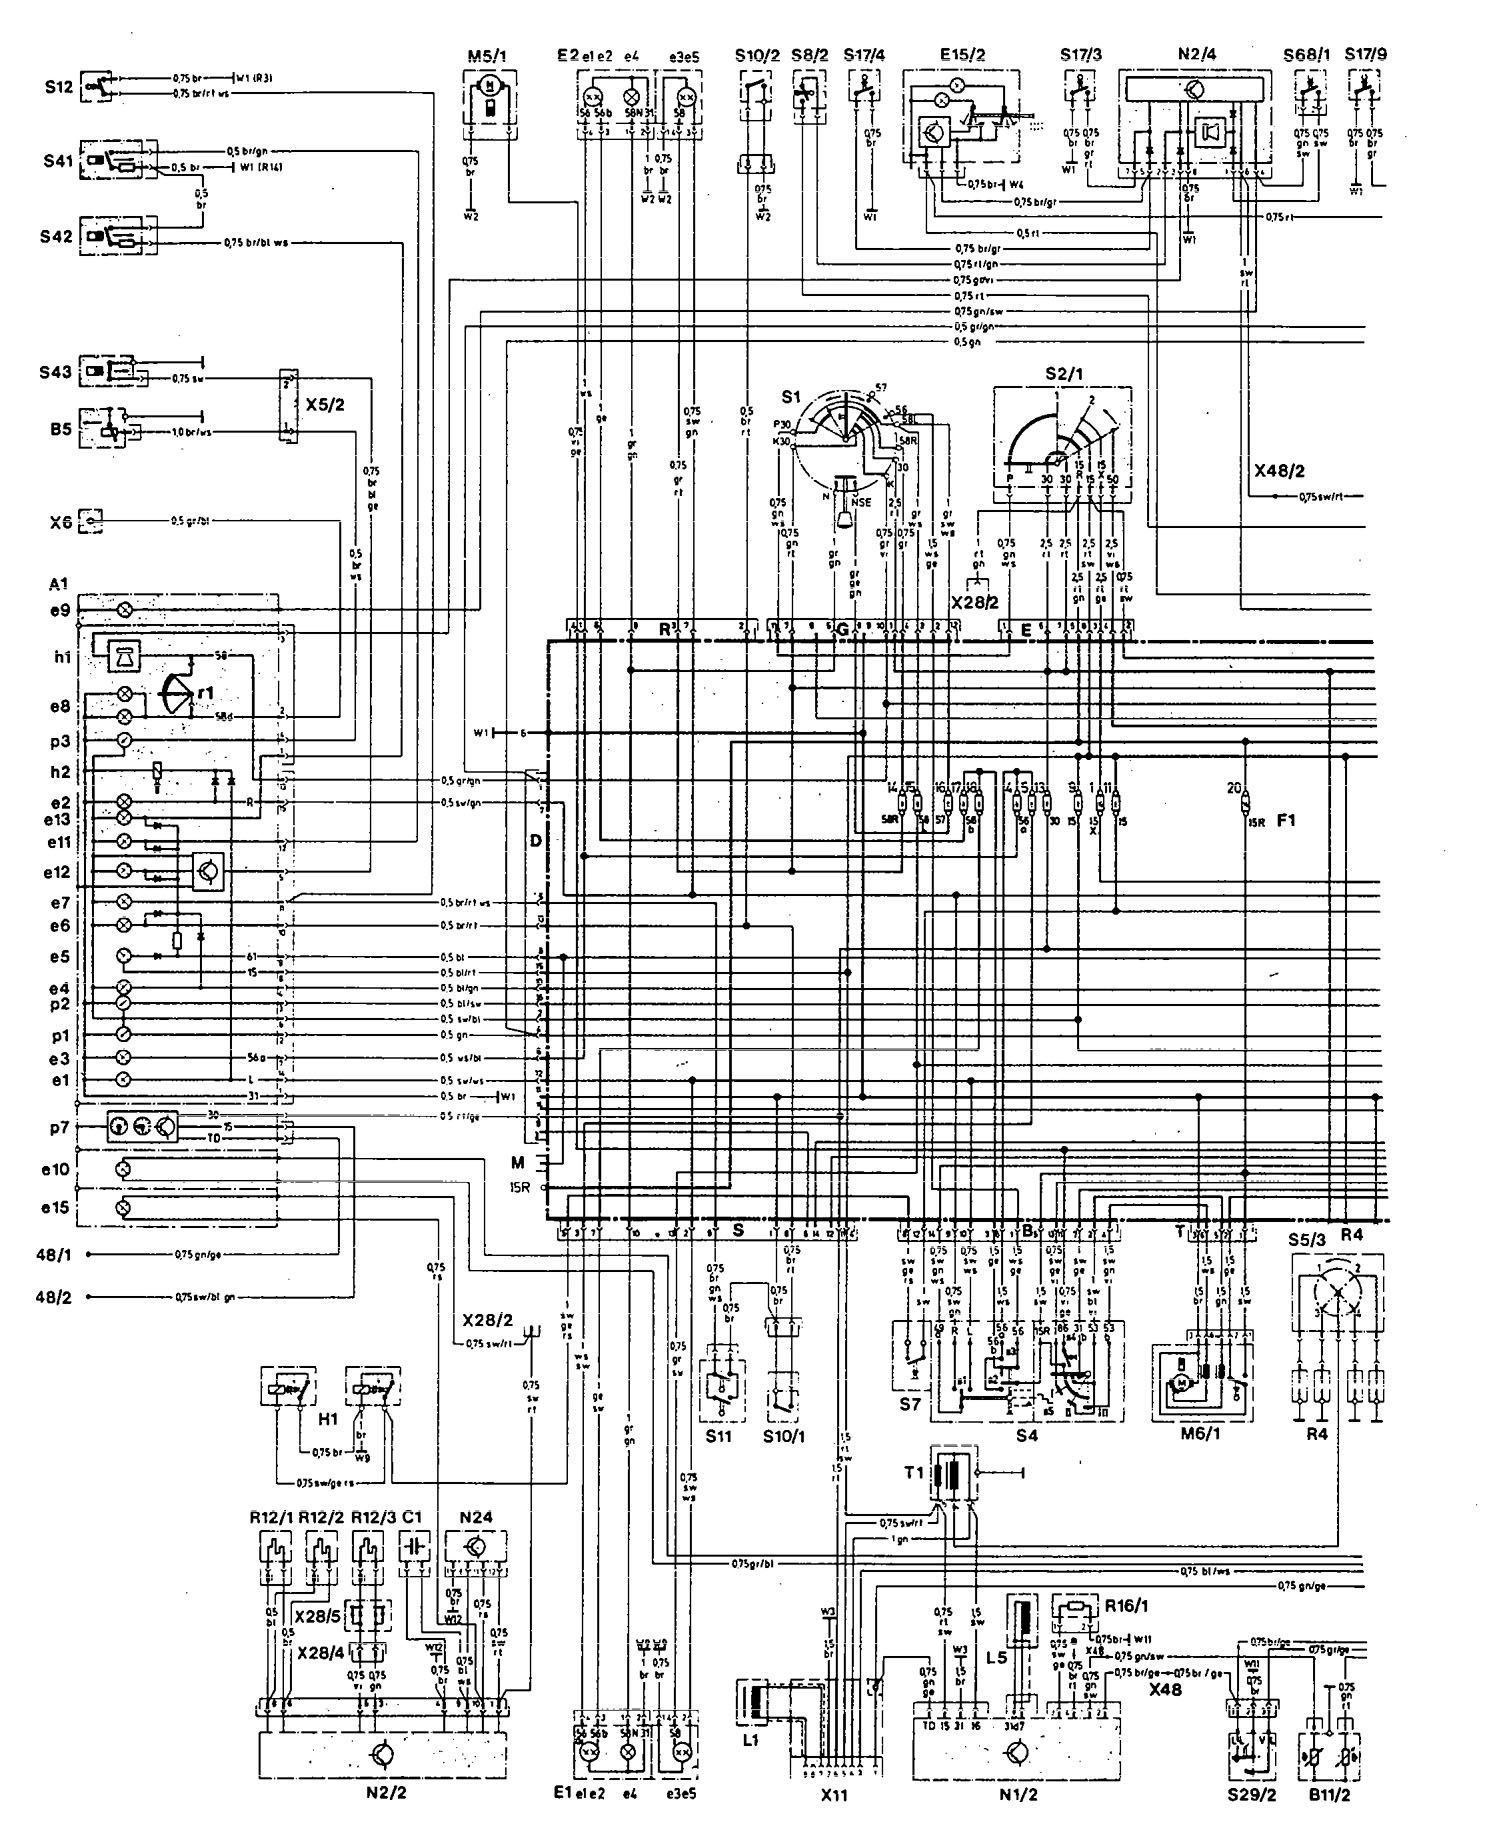 mercedes wiring diagram 2007 dodge caliber sxt radio 190e 1992 diagrams charging system